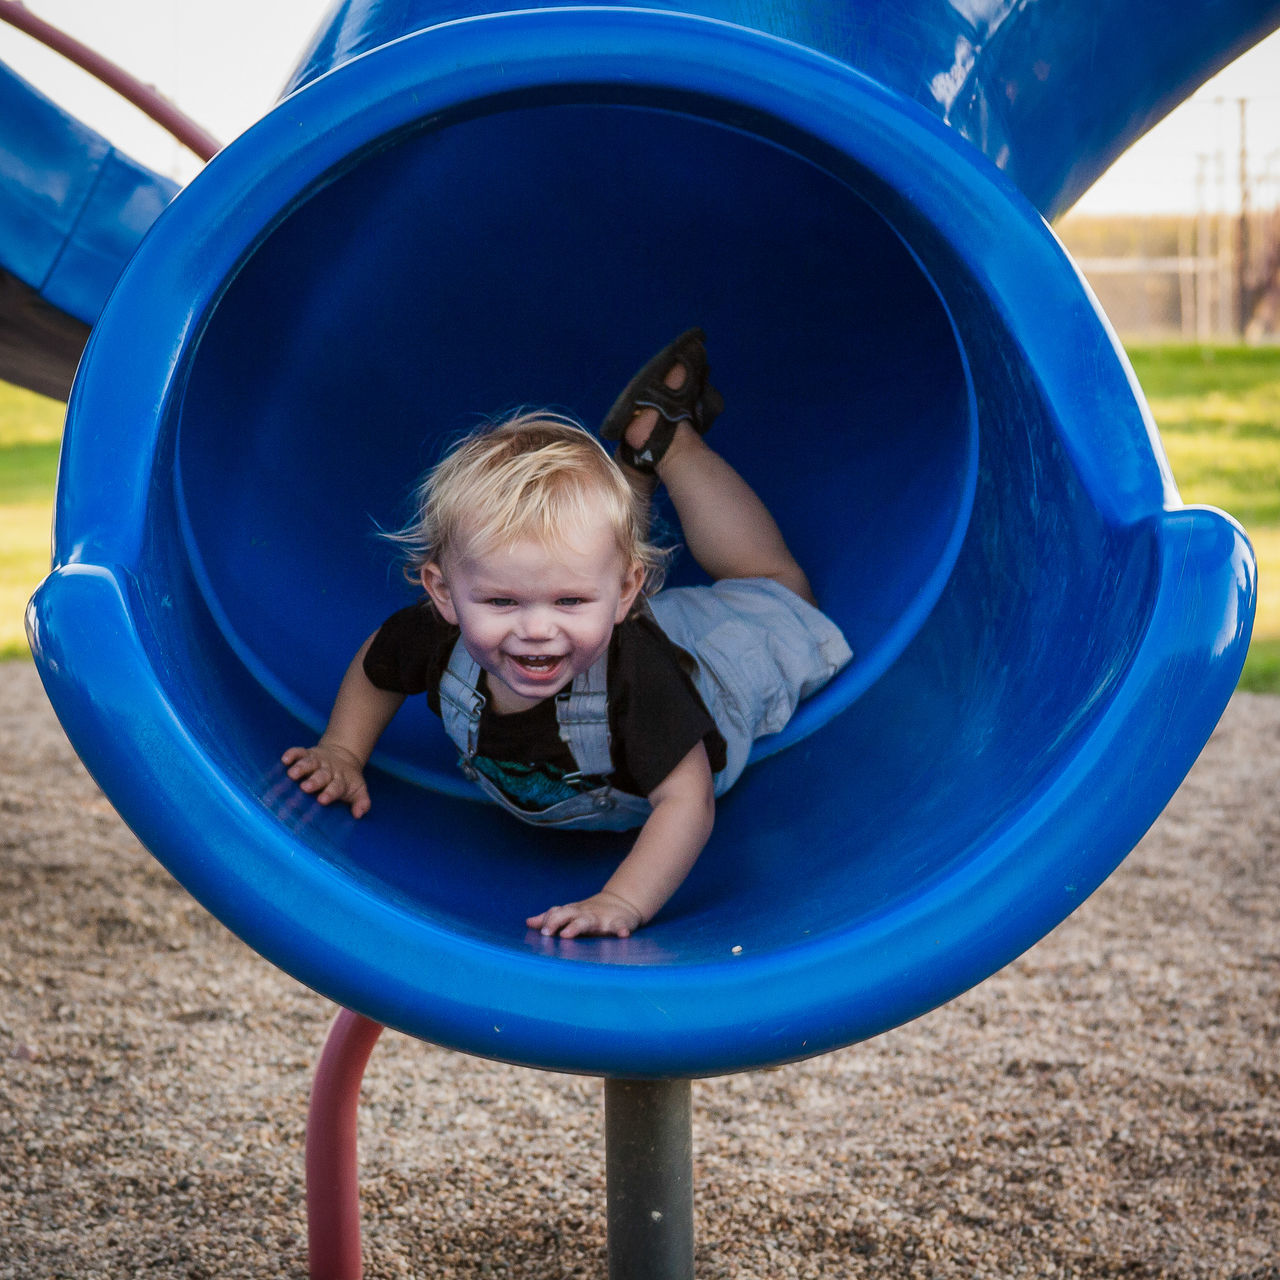 Here I Am Blue Boys Casual Clothing Childhood Cute Day Elementary Age Enjoyment EyeEm Best Shots Full Length Fun Happiness Joy Leisure Activity Live For The Story Memories Outdoor Play Equipment Outdoors Park - Man Made Space Playground Playing Slide Slide - Play Equipment Smiling Summer